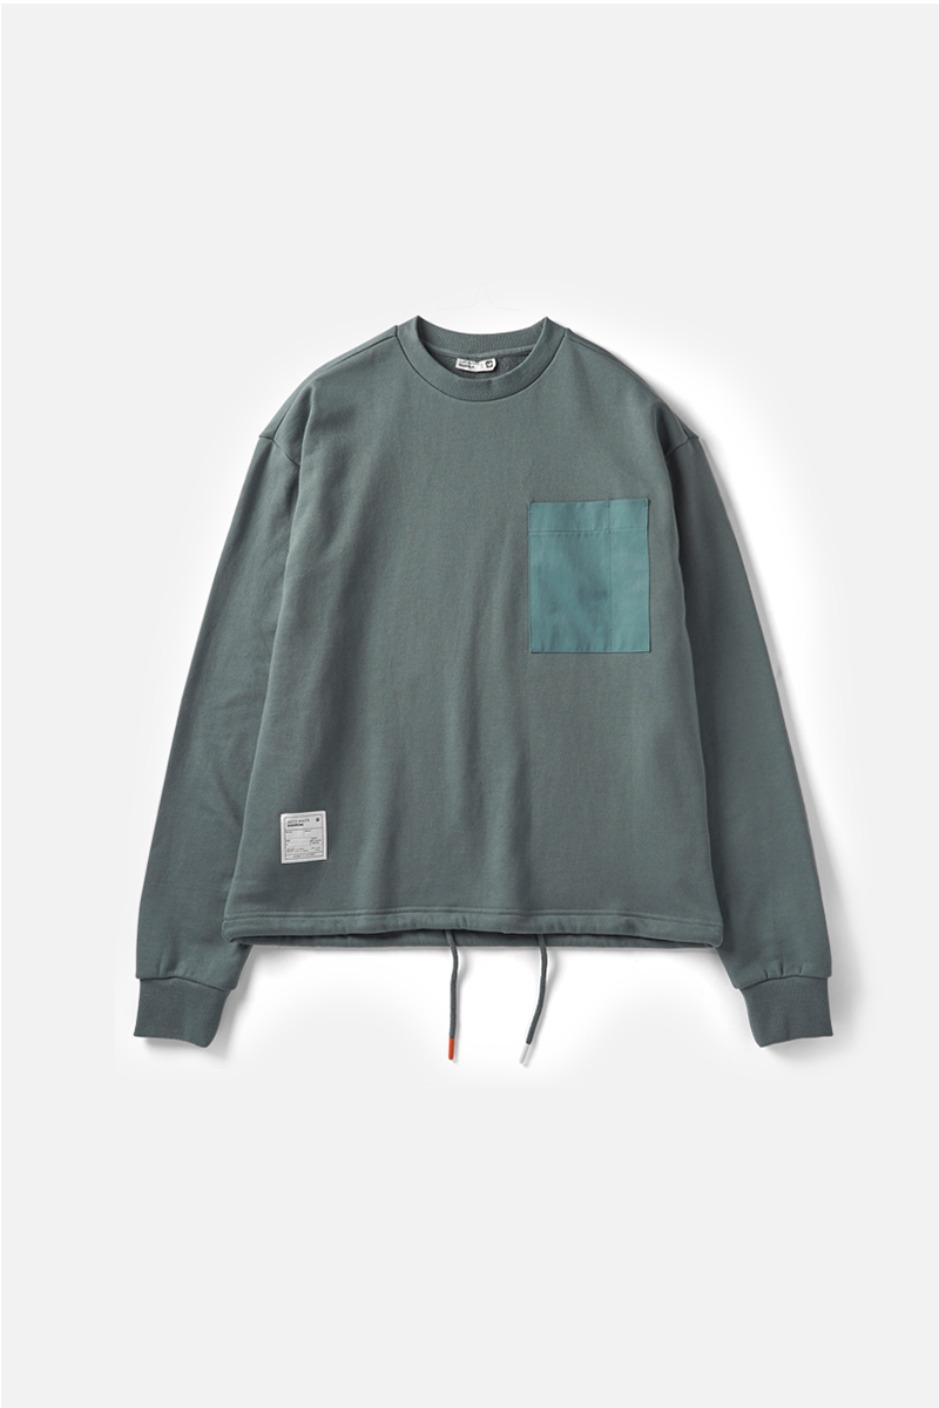 RAWROW X AECA WHITE STRING SWEAT SHIRT-GREEN